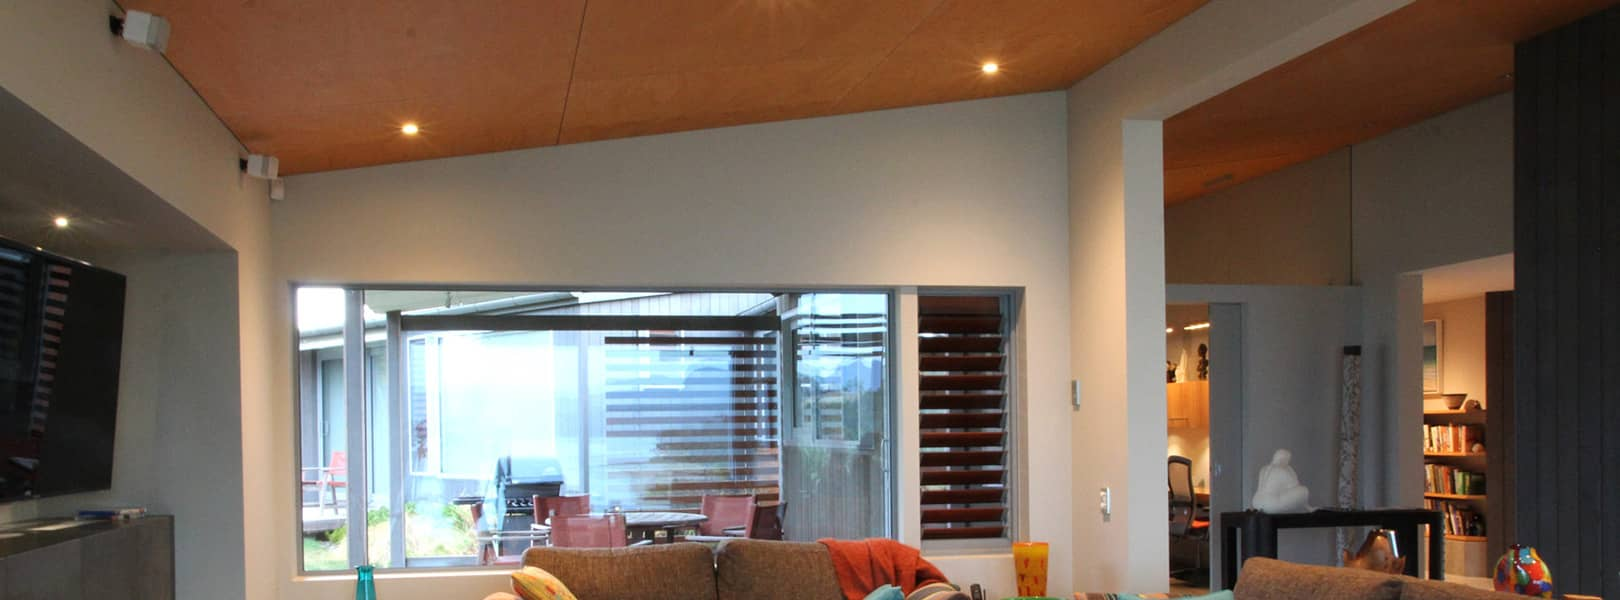 LED downlights recessed into modern sloping plywood ceiling in the lounge